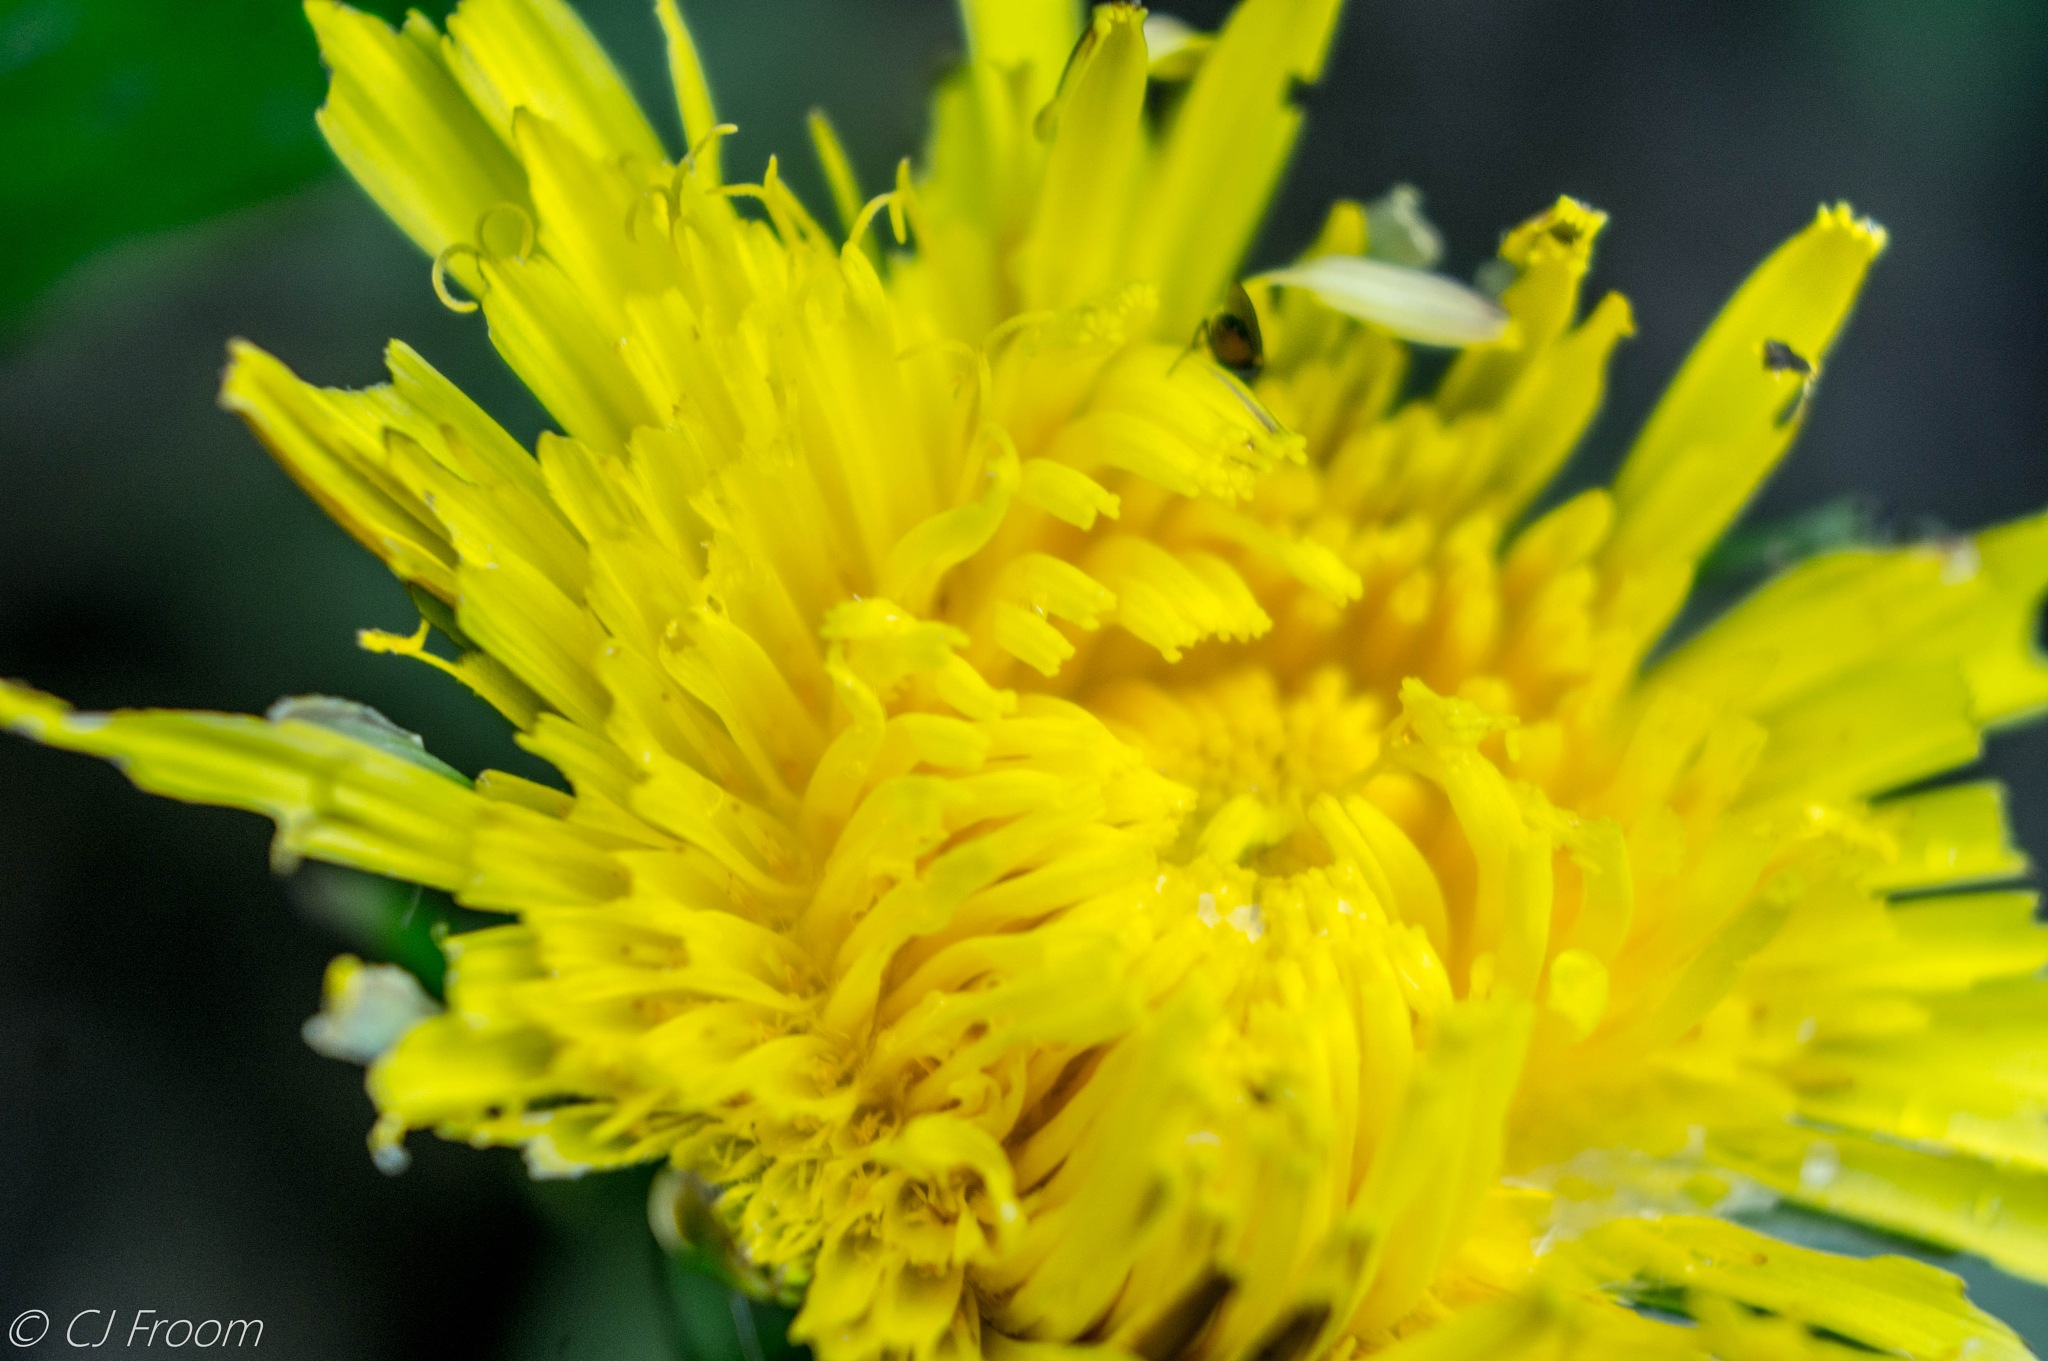 Dandelion by Cj Froom